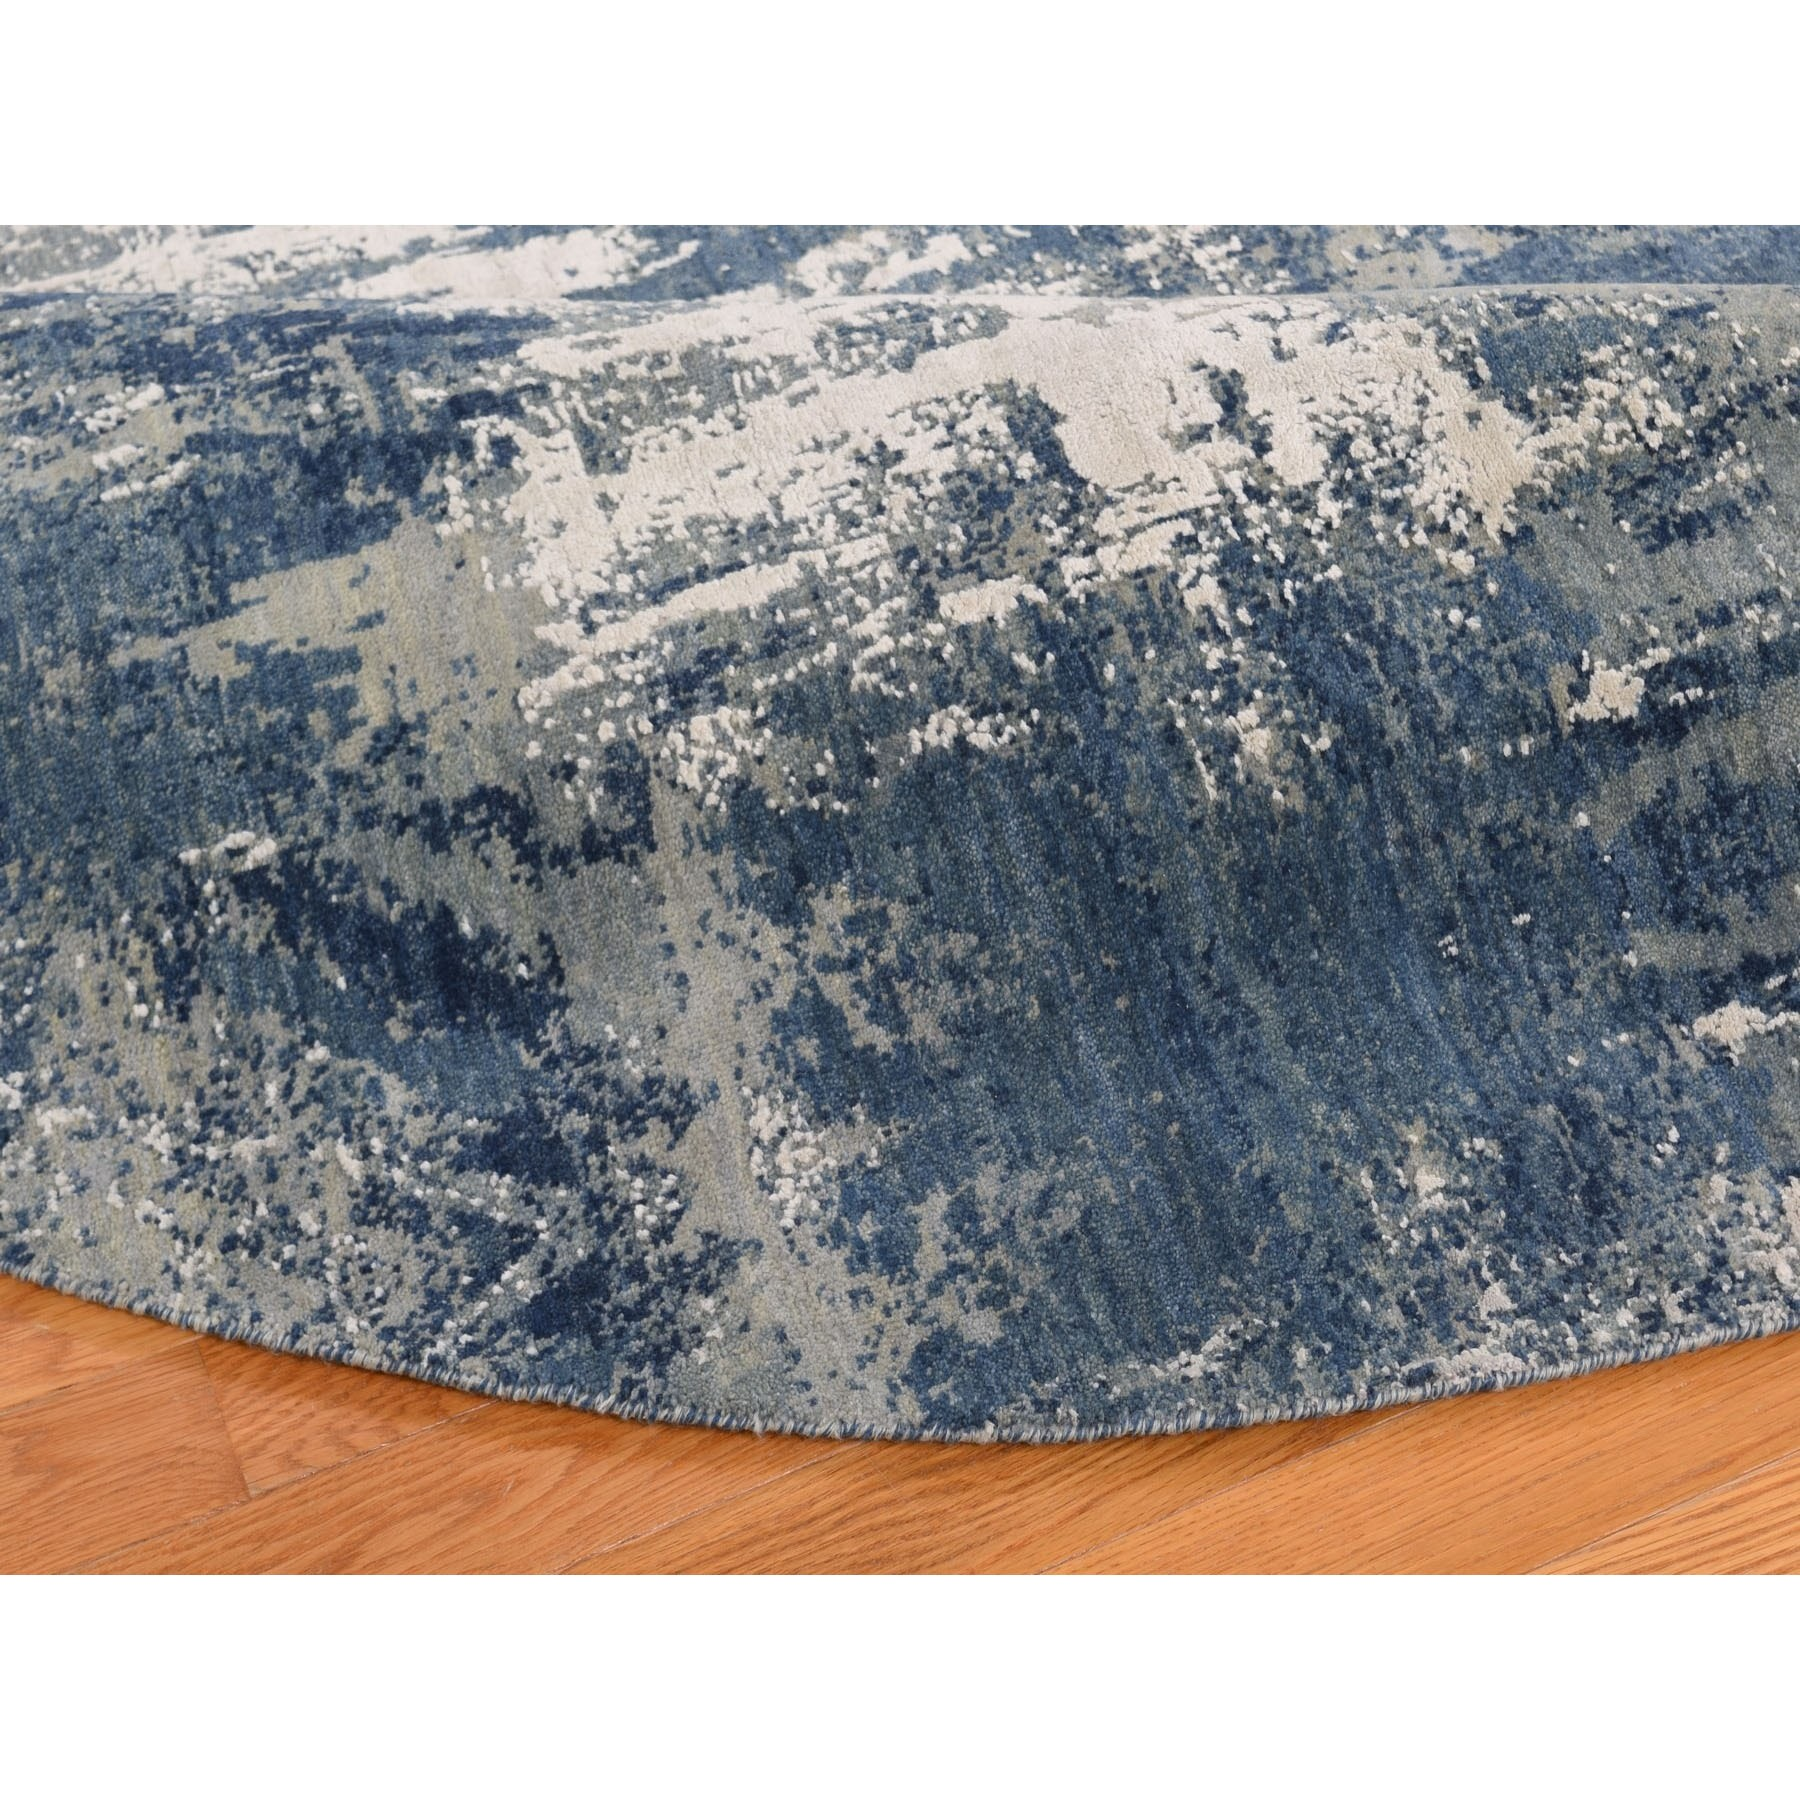 8-1 x8-1  Blue Abstract Design Wool and Pure Silk Hand Knotted Round Oriental Rug